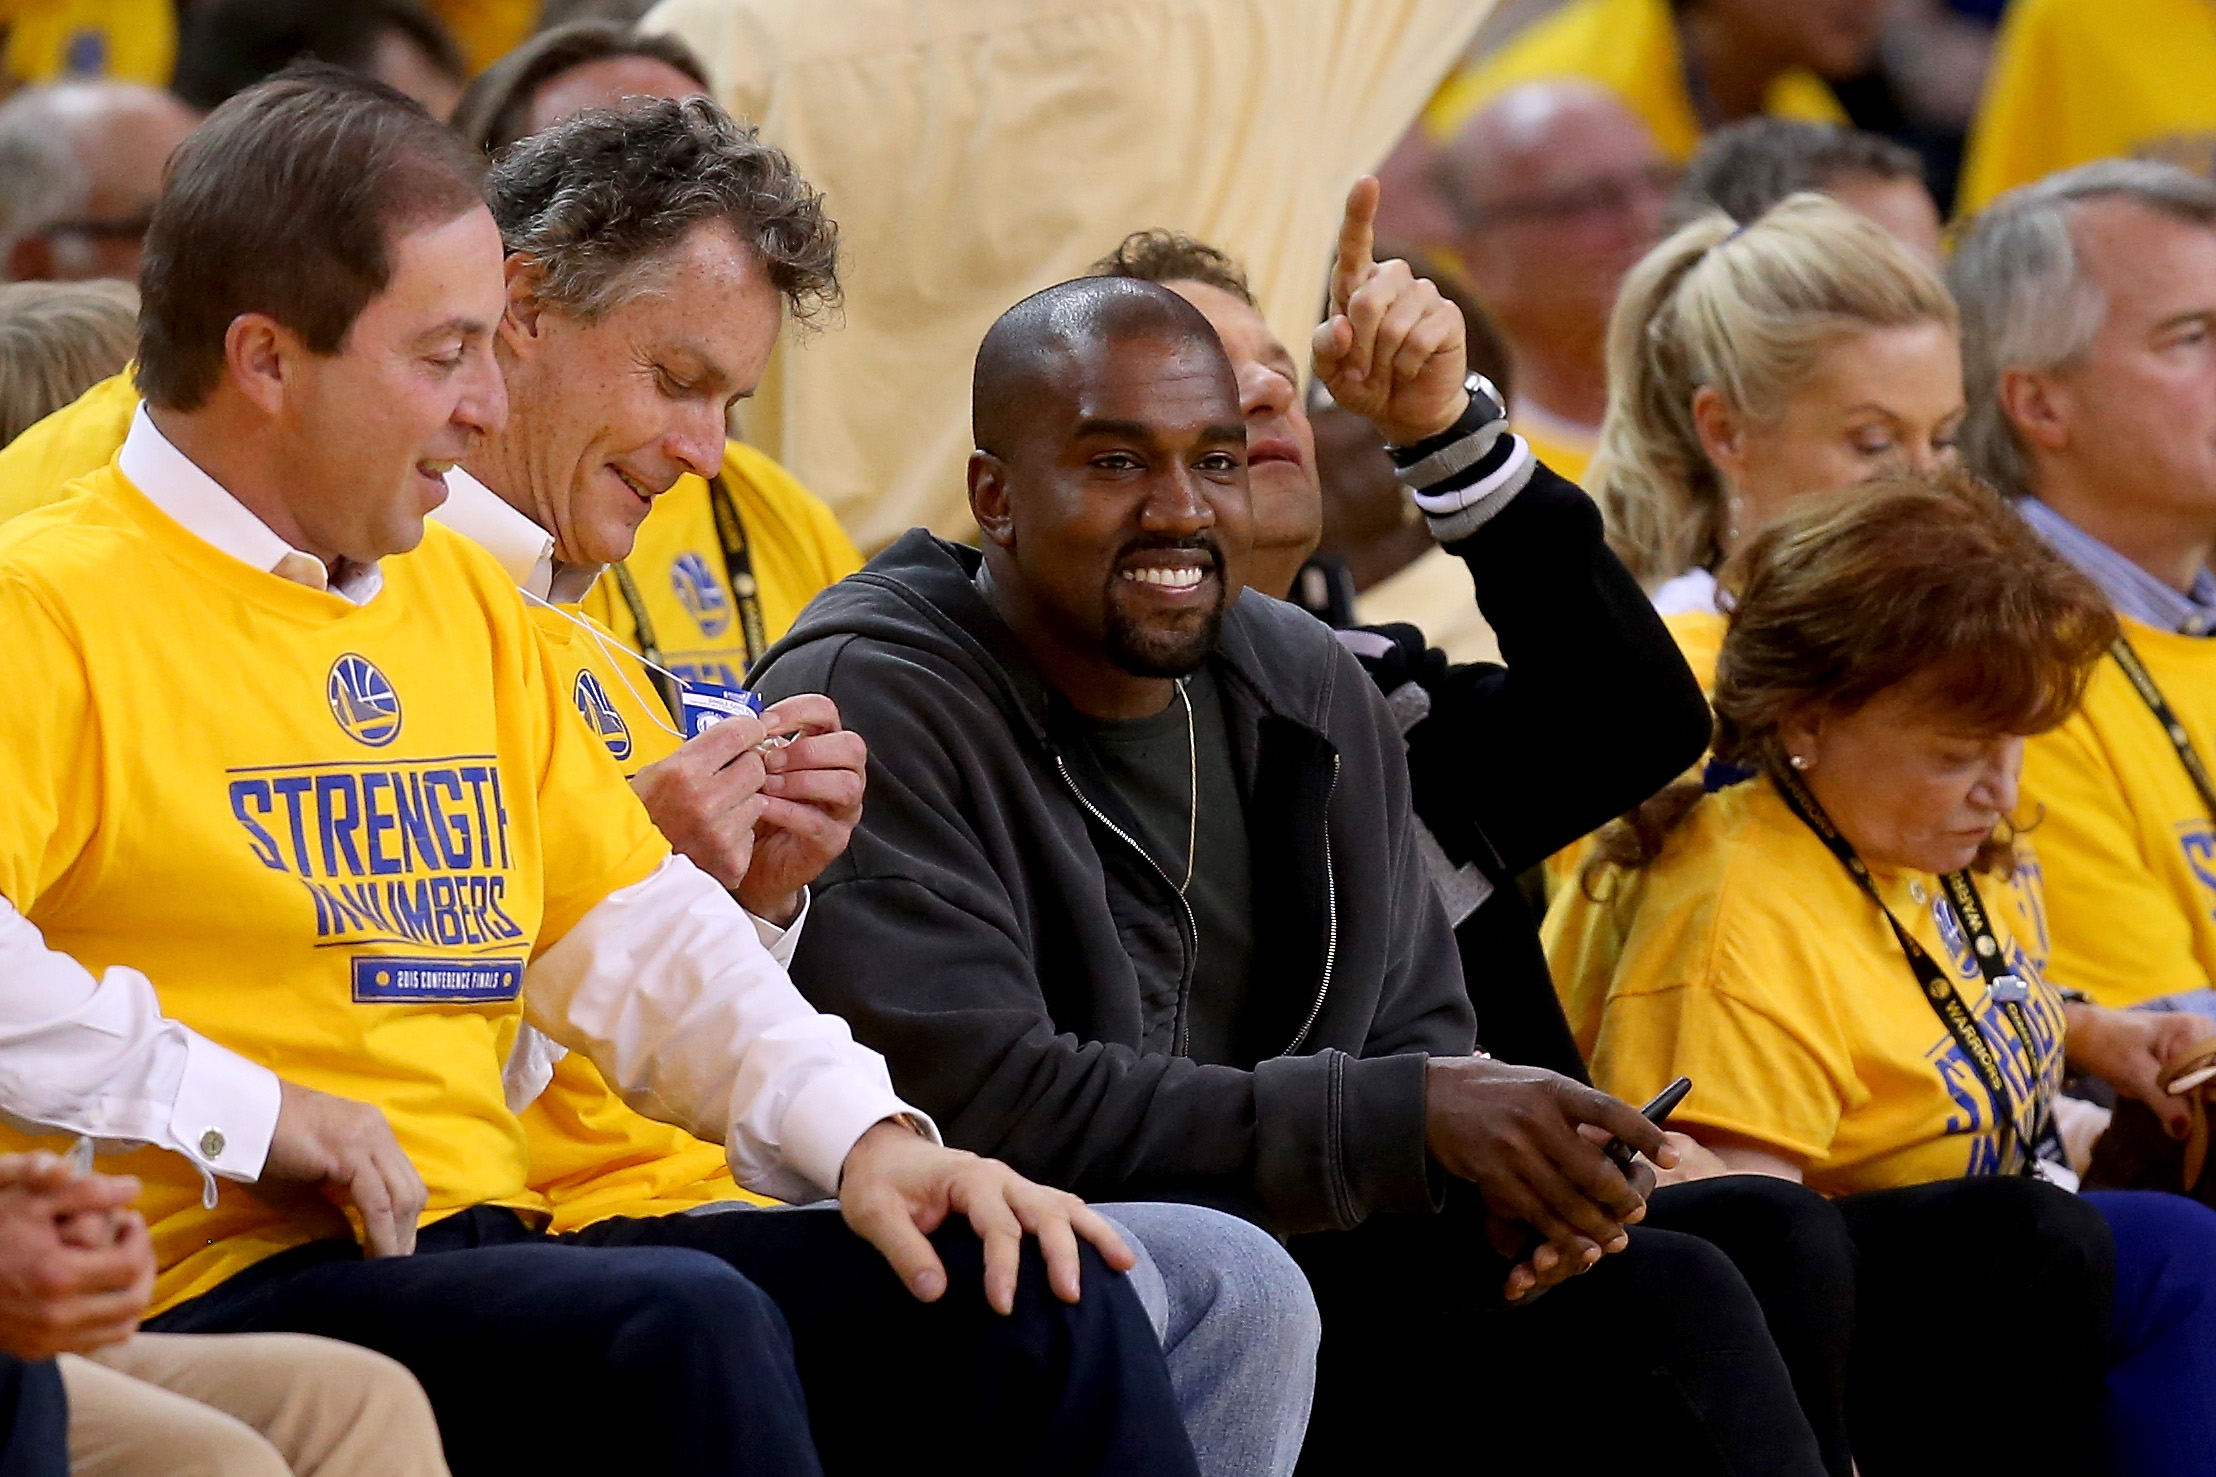 Kanye West Already Has Big Plans For The Nba If He Becomes President